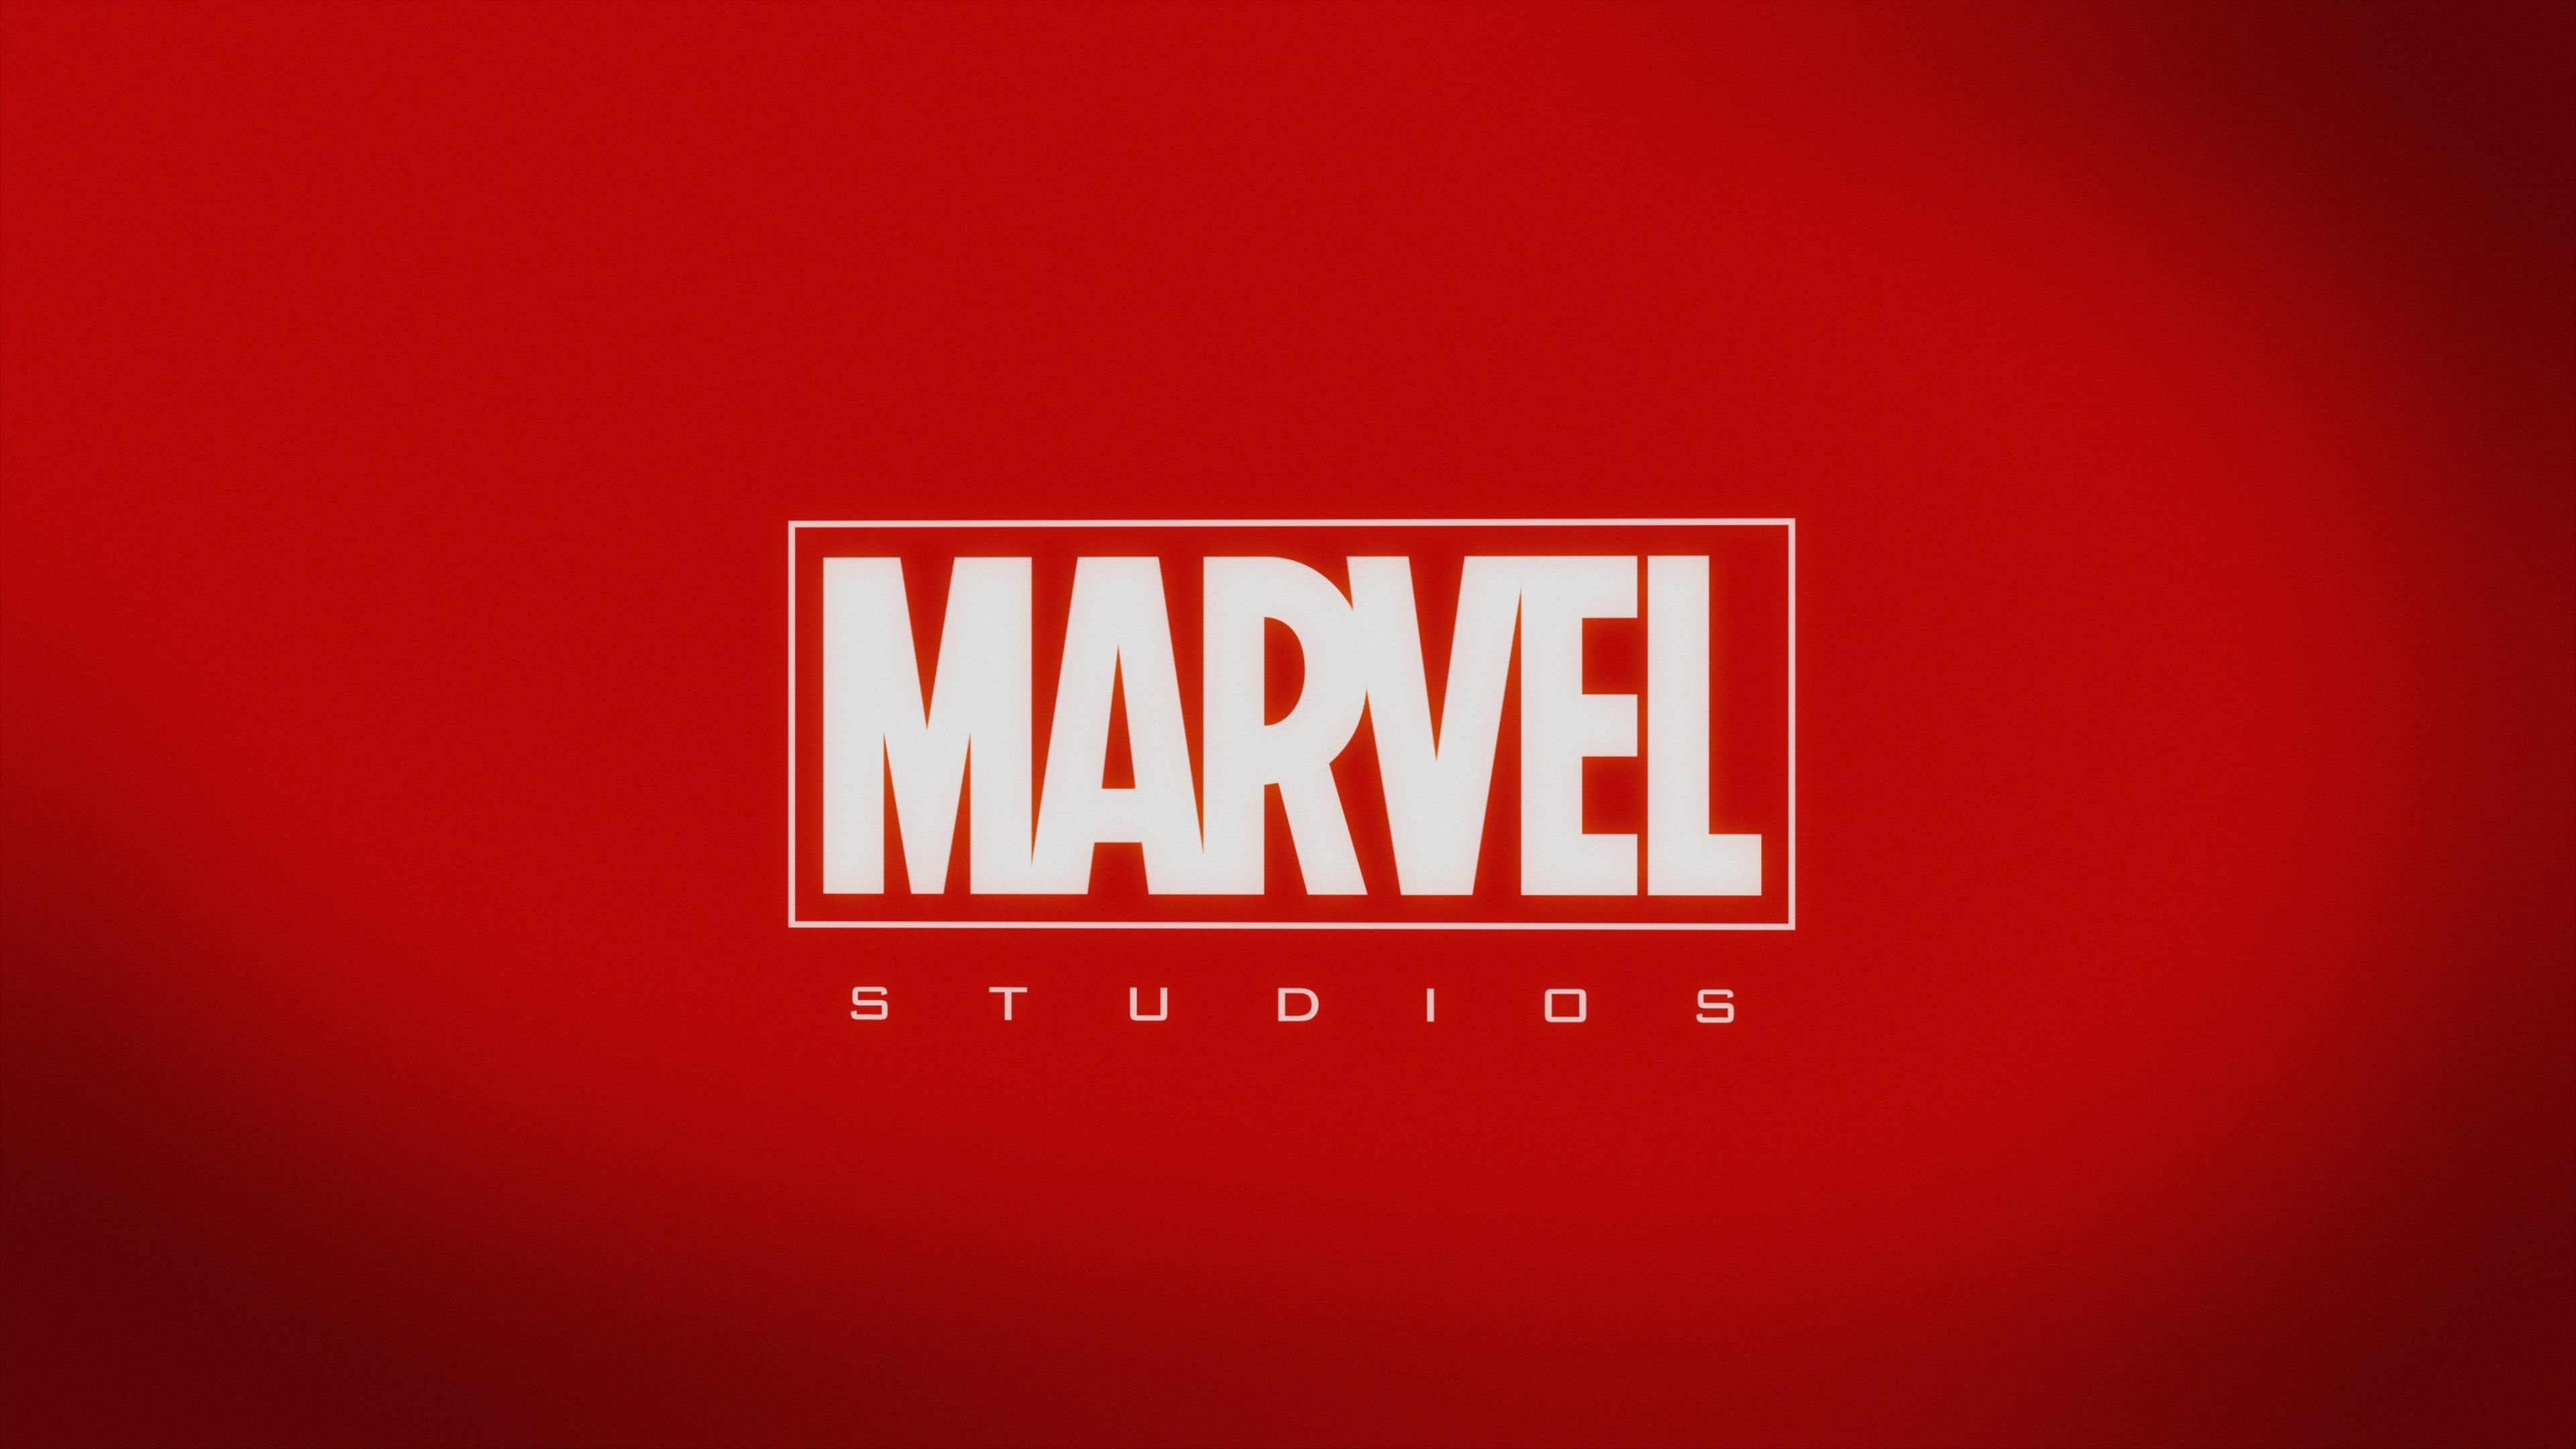 Filename 3840x2160 Marvel Studios 4k Wallpaper Pc Background Resolution 3840x2160 File Size 1168 Kb Upl In 2020 Marvel Studios Logo Marvel Studios Marvel Television